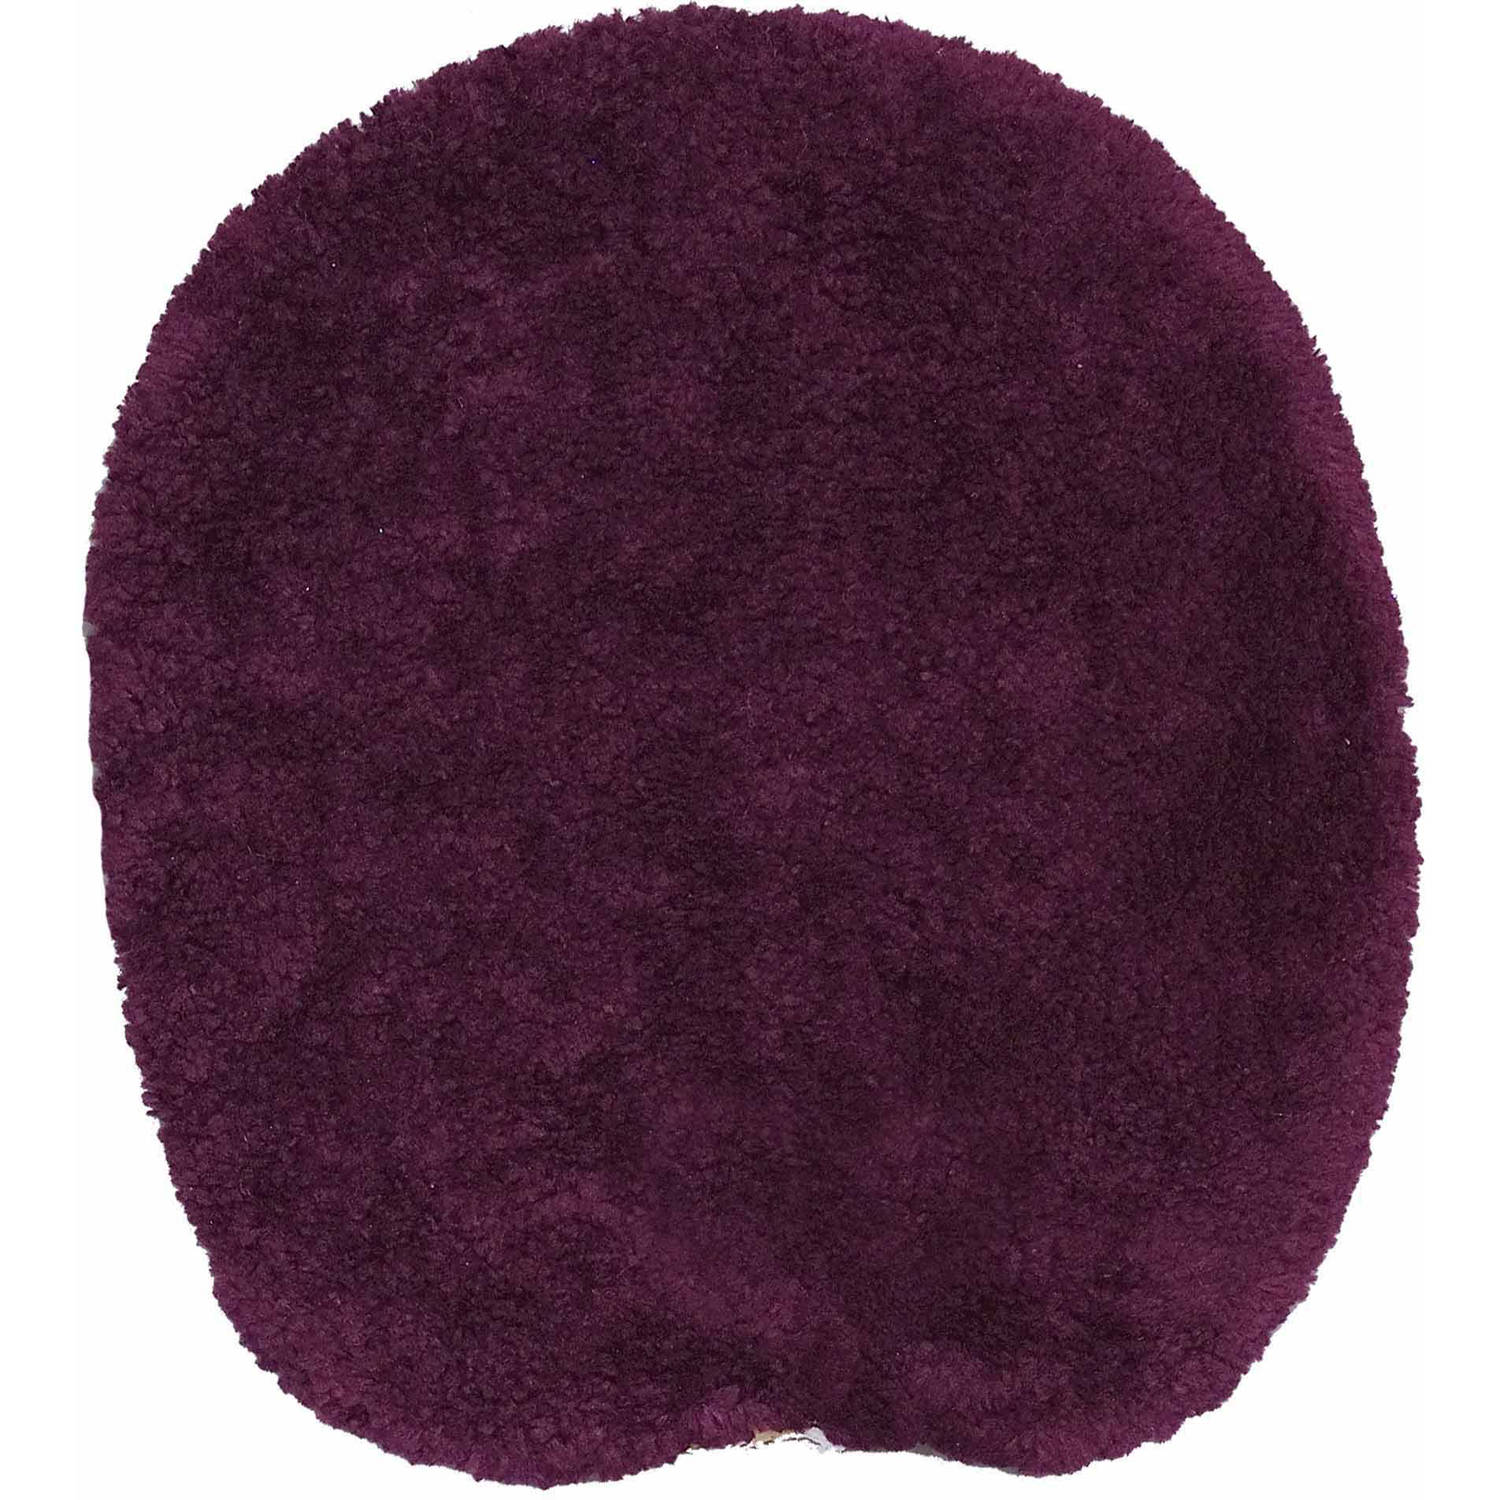 Mainstays Ms Universal Lid Cover Plush Plum